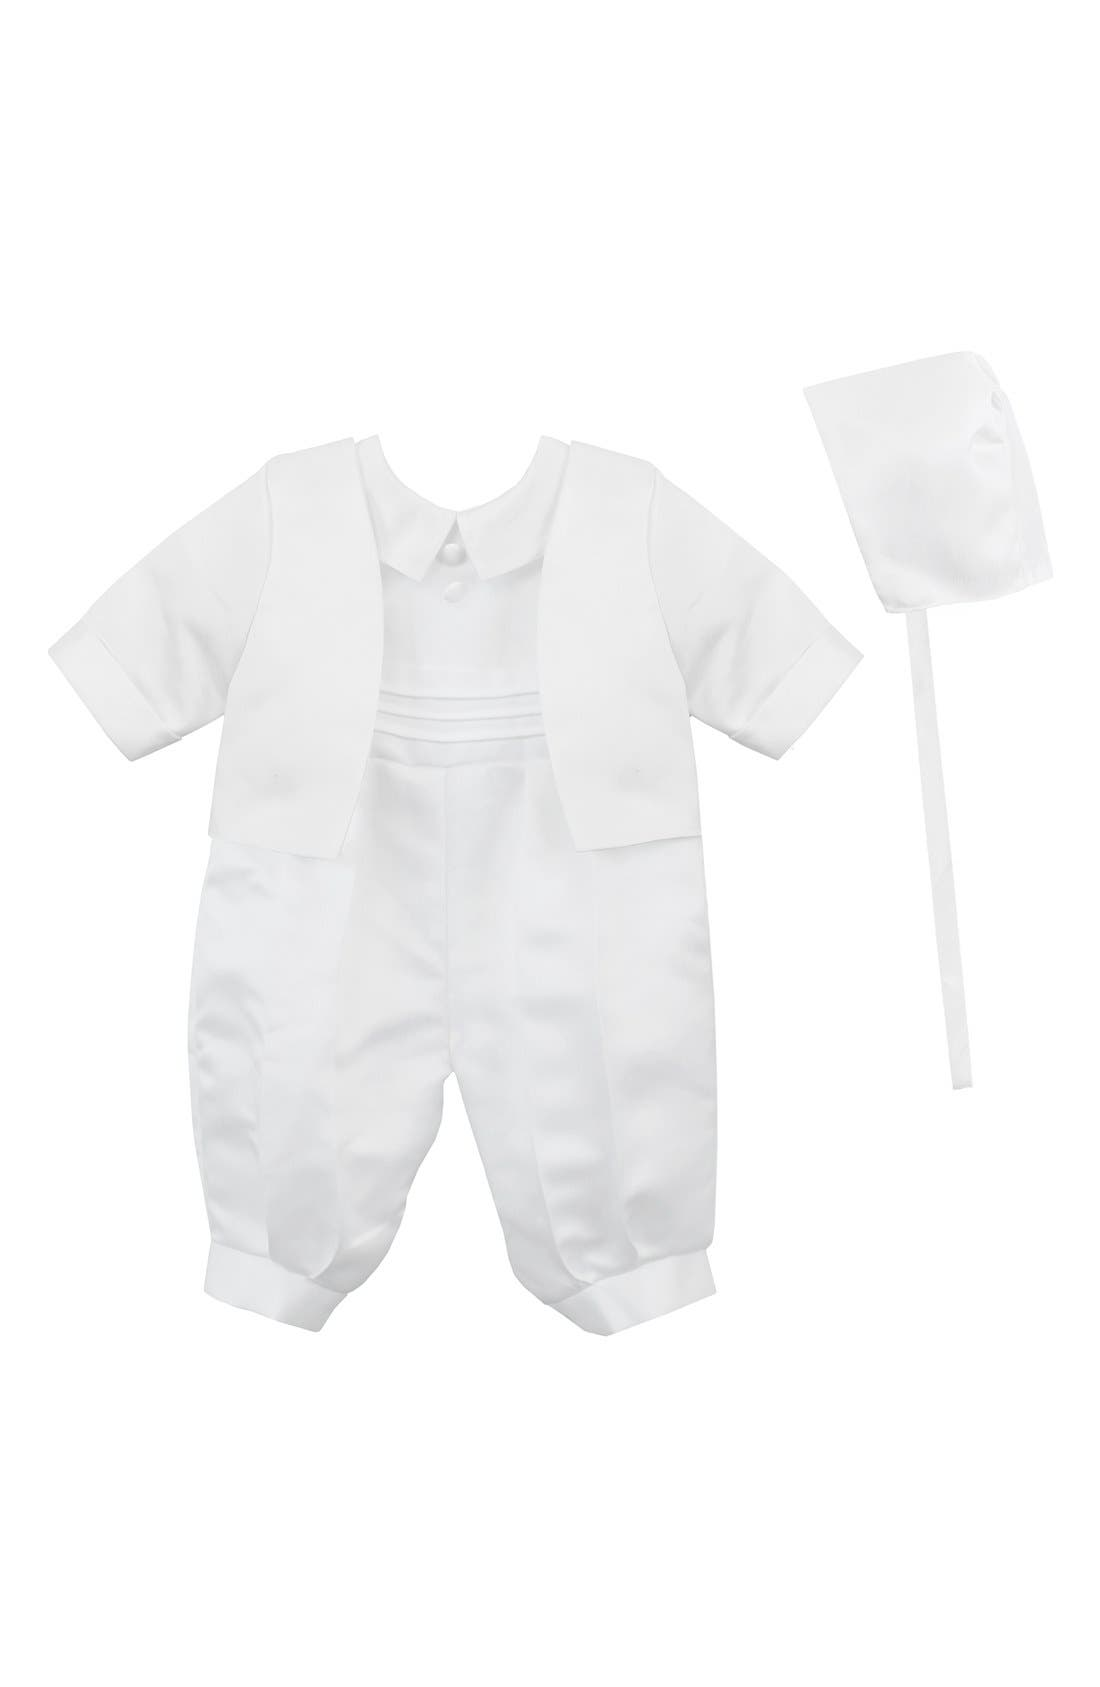 C.I. CASTRO & CO., Christening Romper & Cap, Main thumbnail 1, color, 100